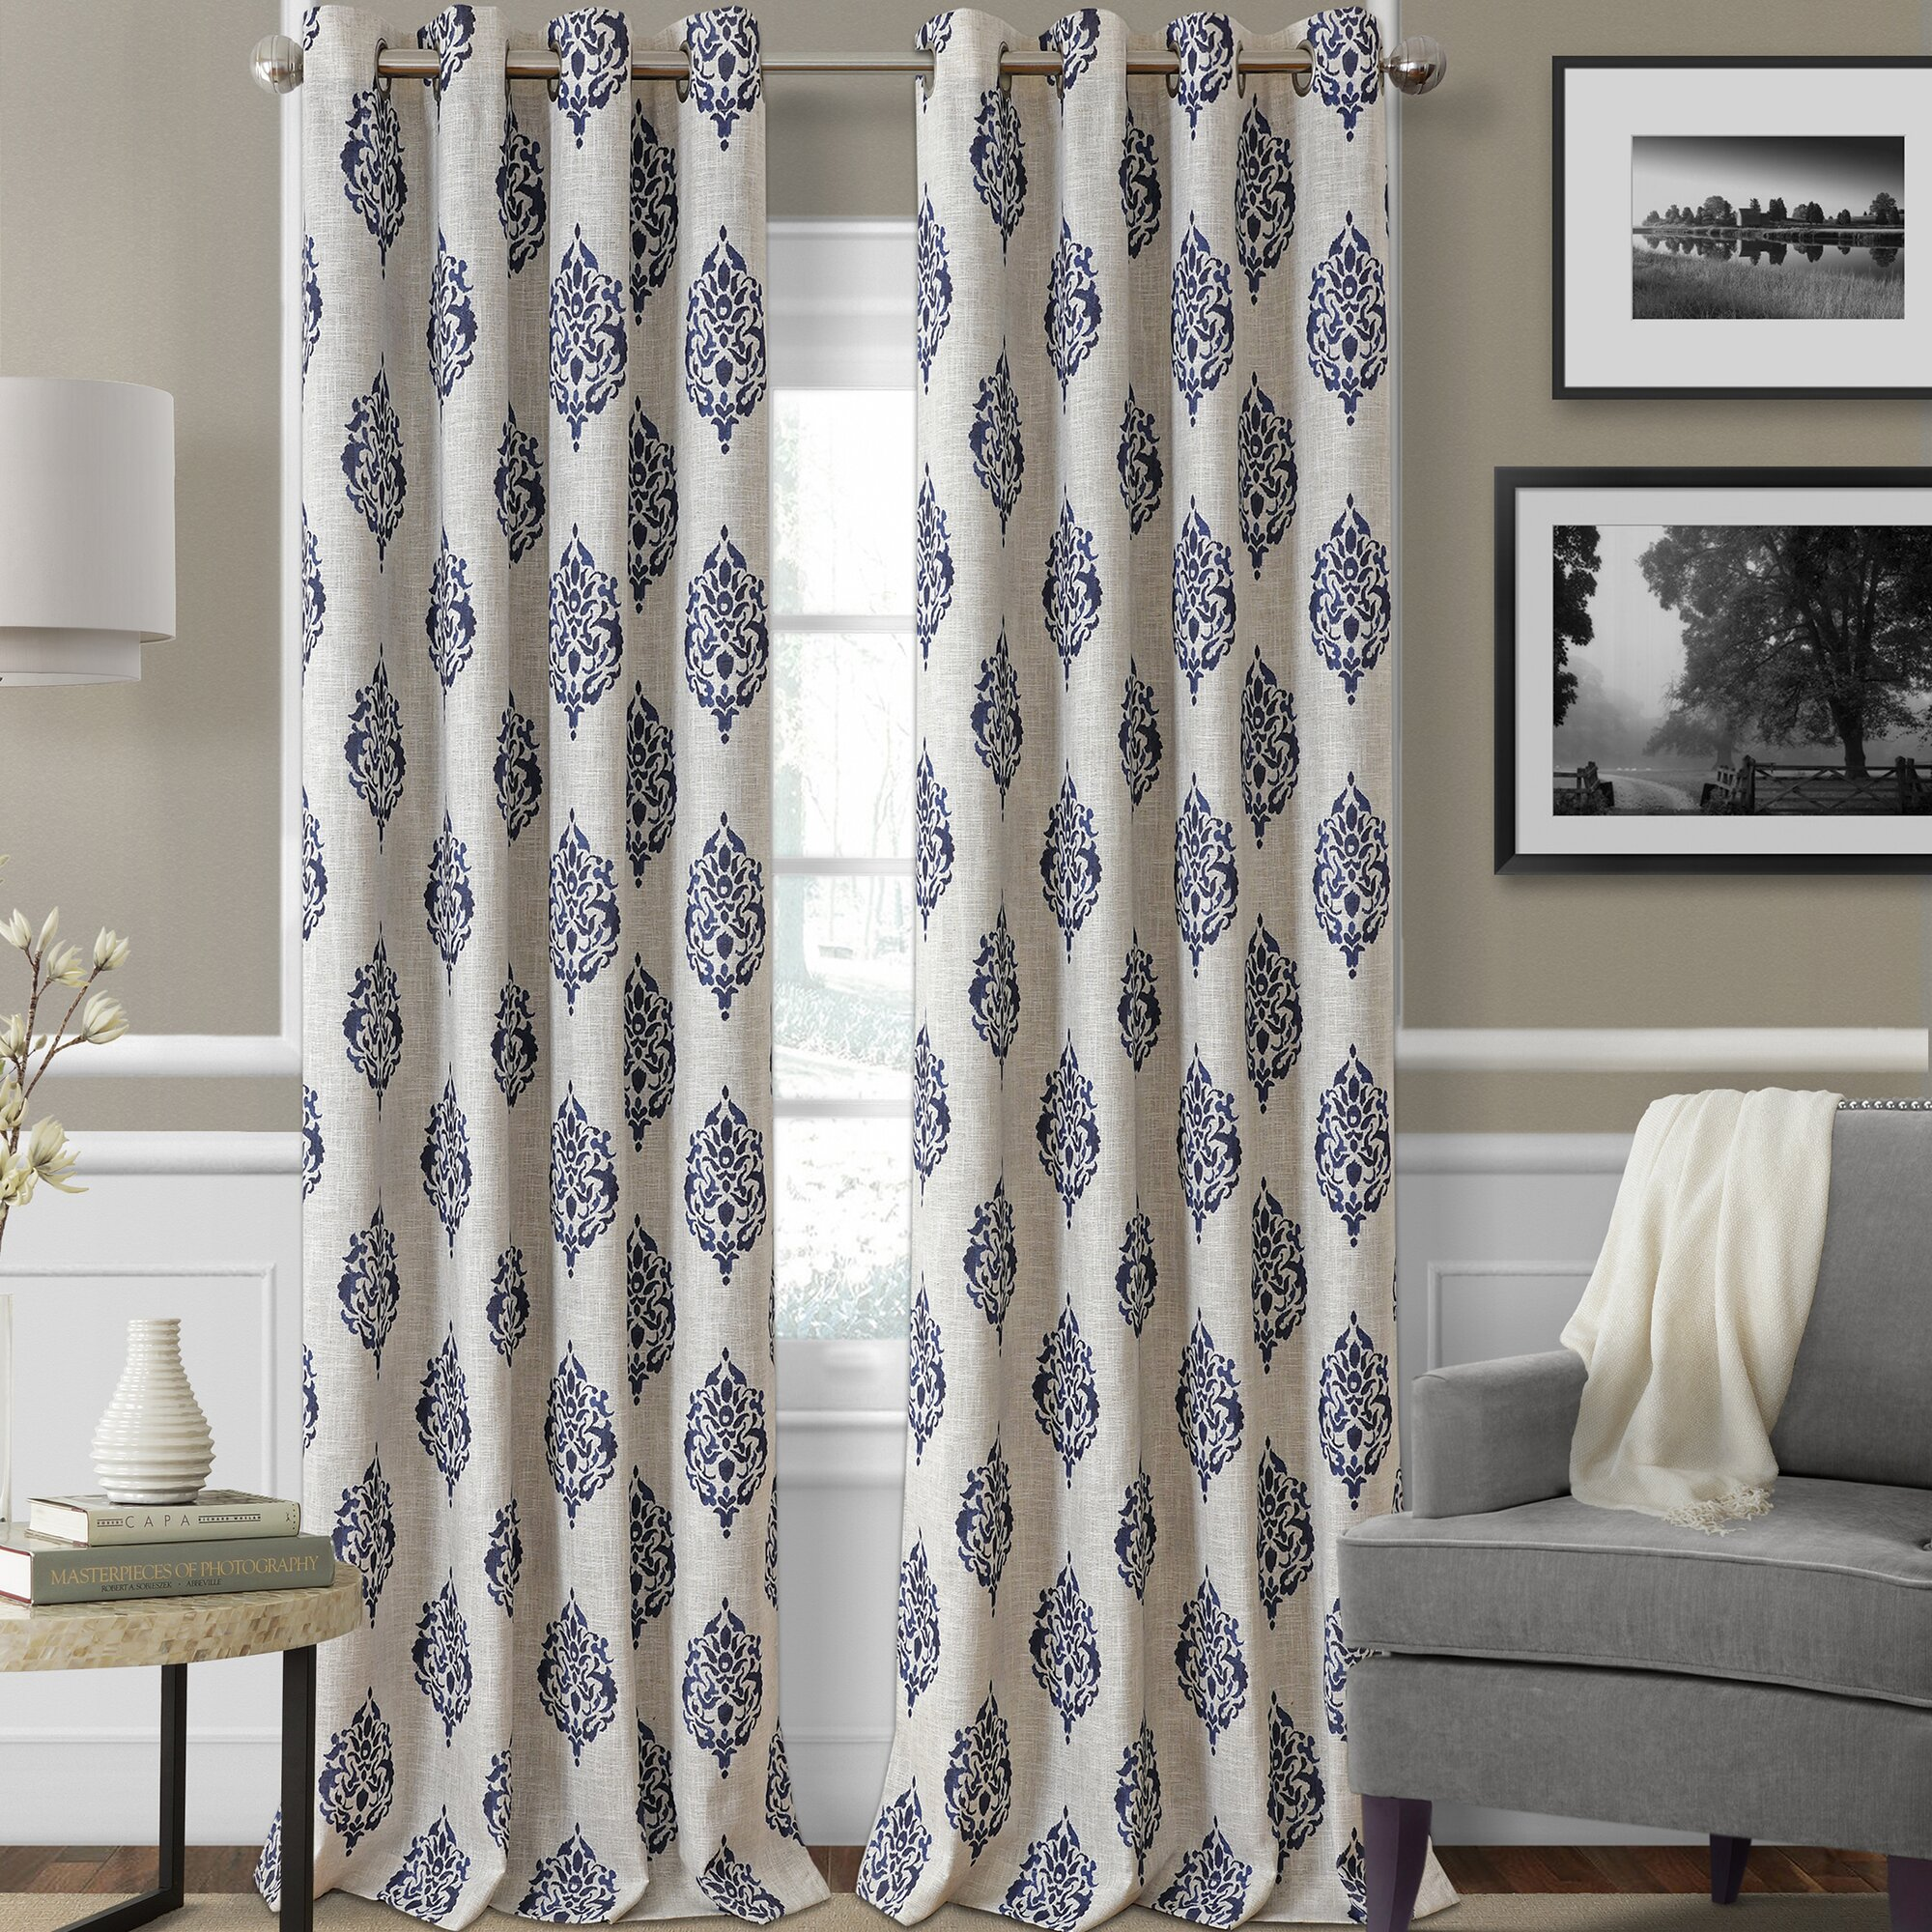 Home Design Ideas Curtains: Elrene Home Fashions Navara Ikat Blackout Thermal Grommet